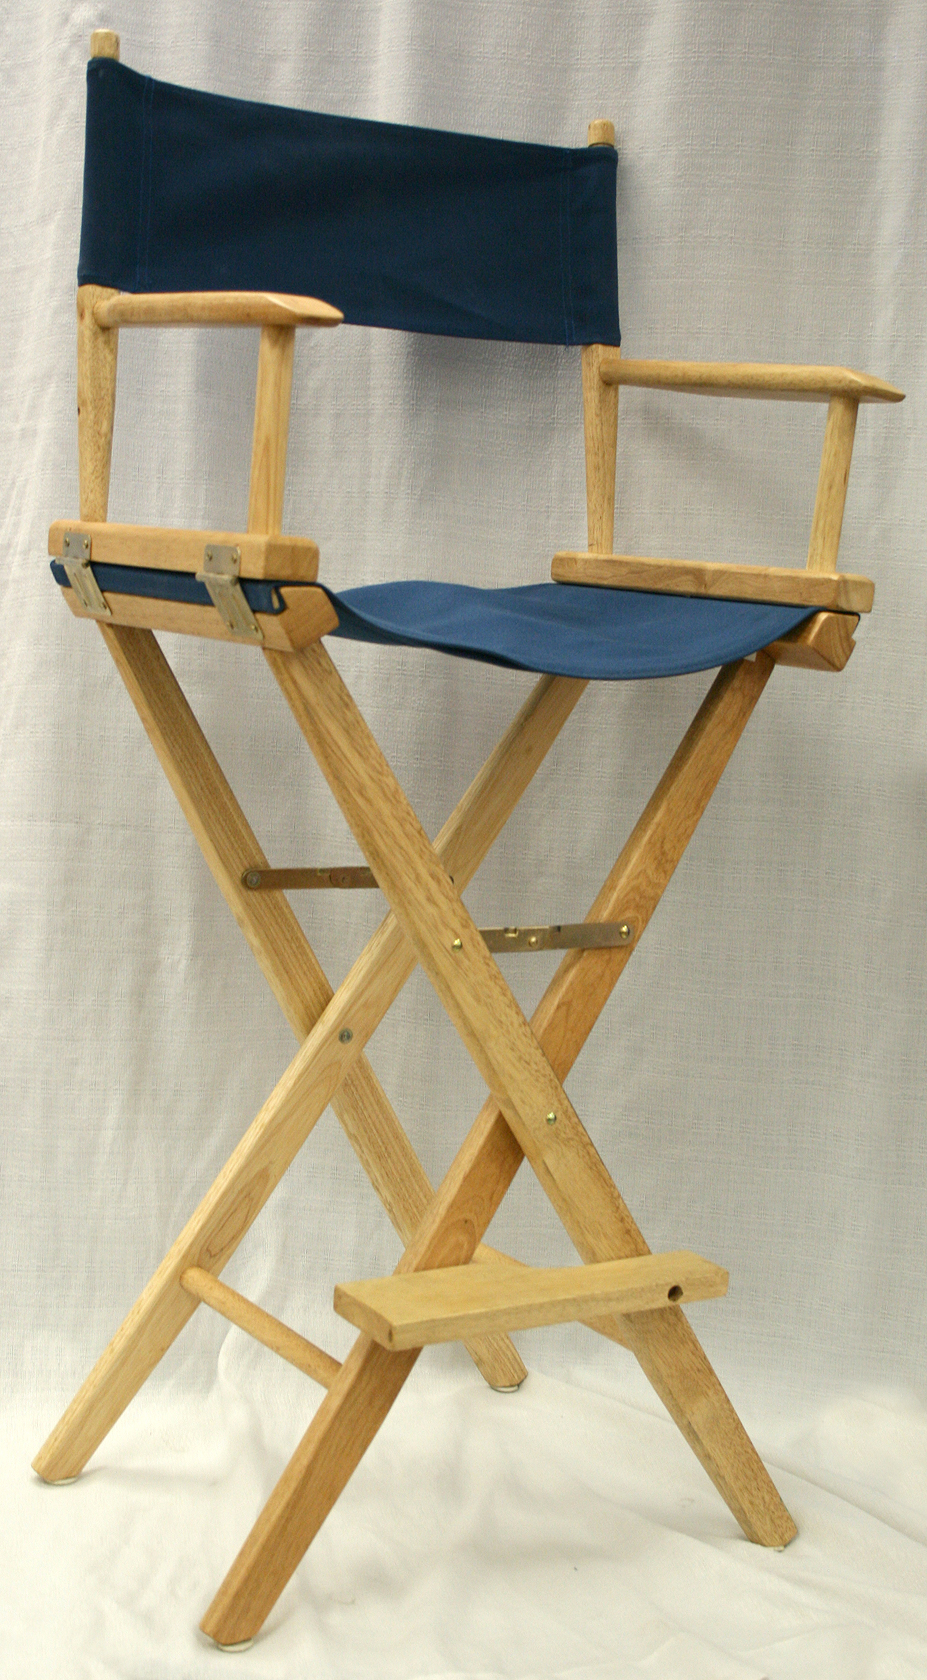 tall director chair bungee amazon folding s rental iowa canvas seat back dark navy blue